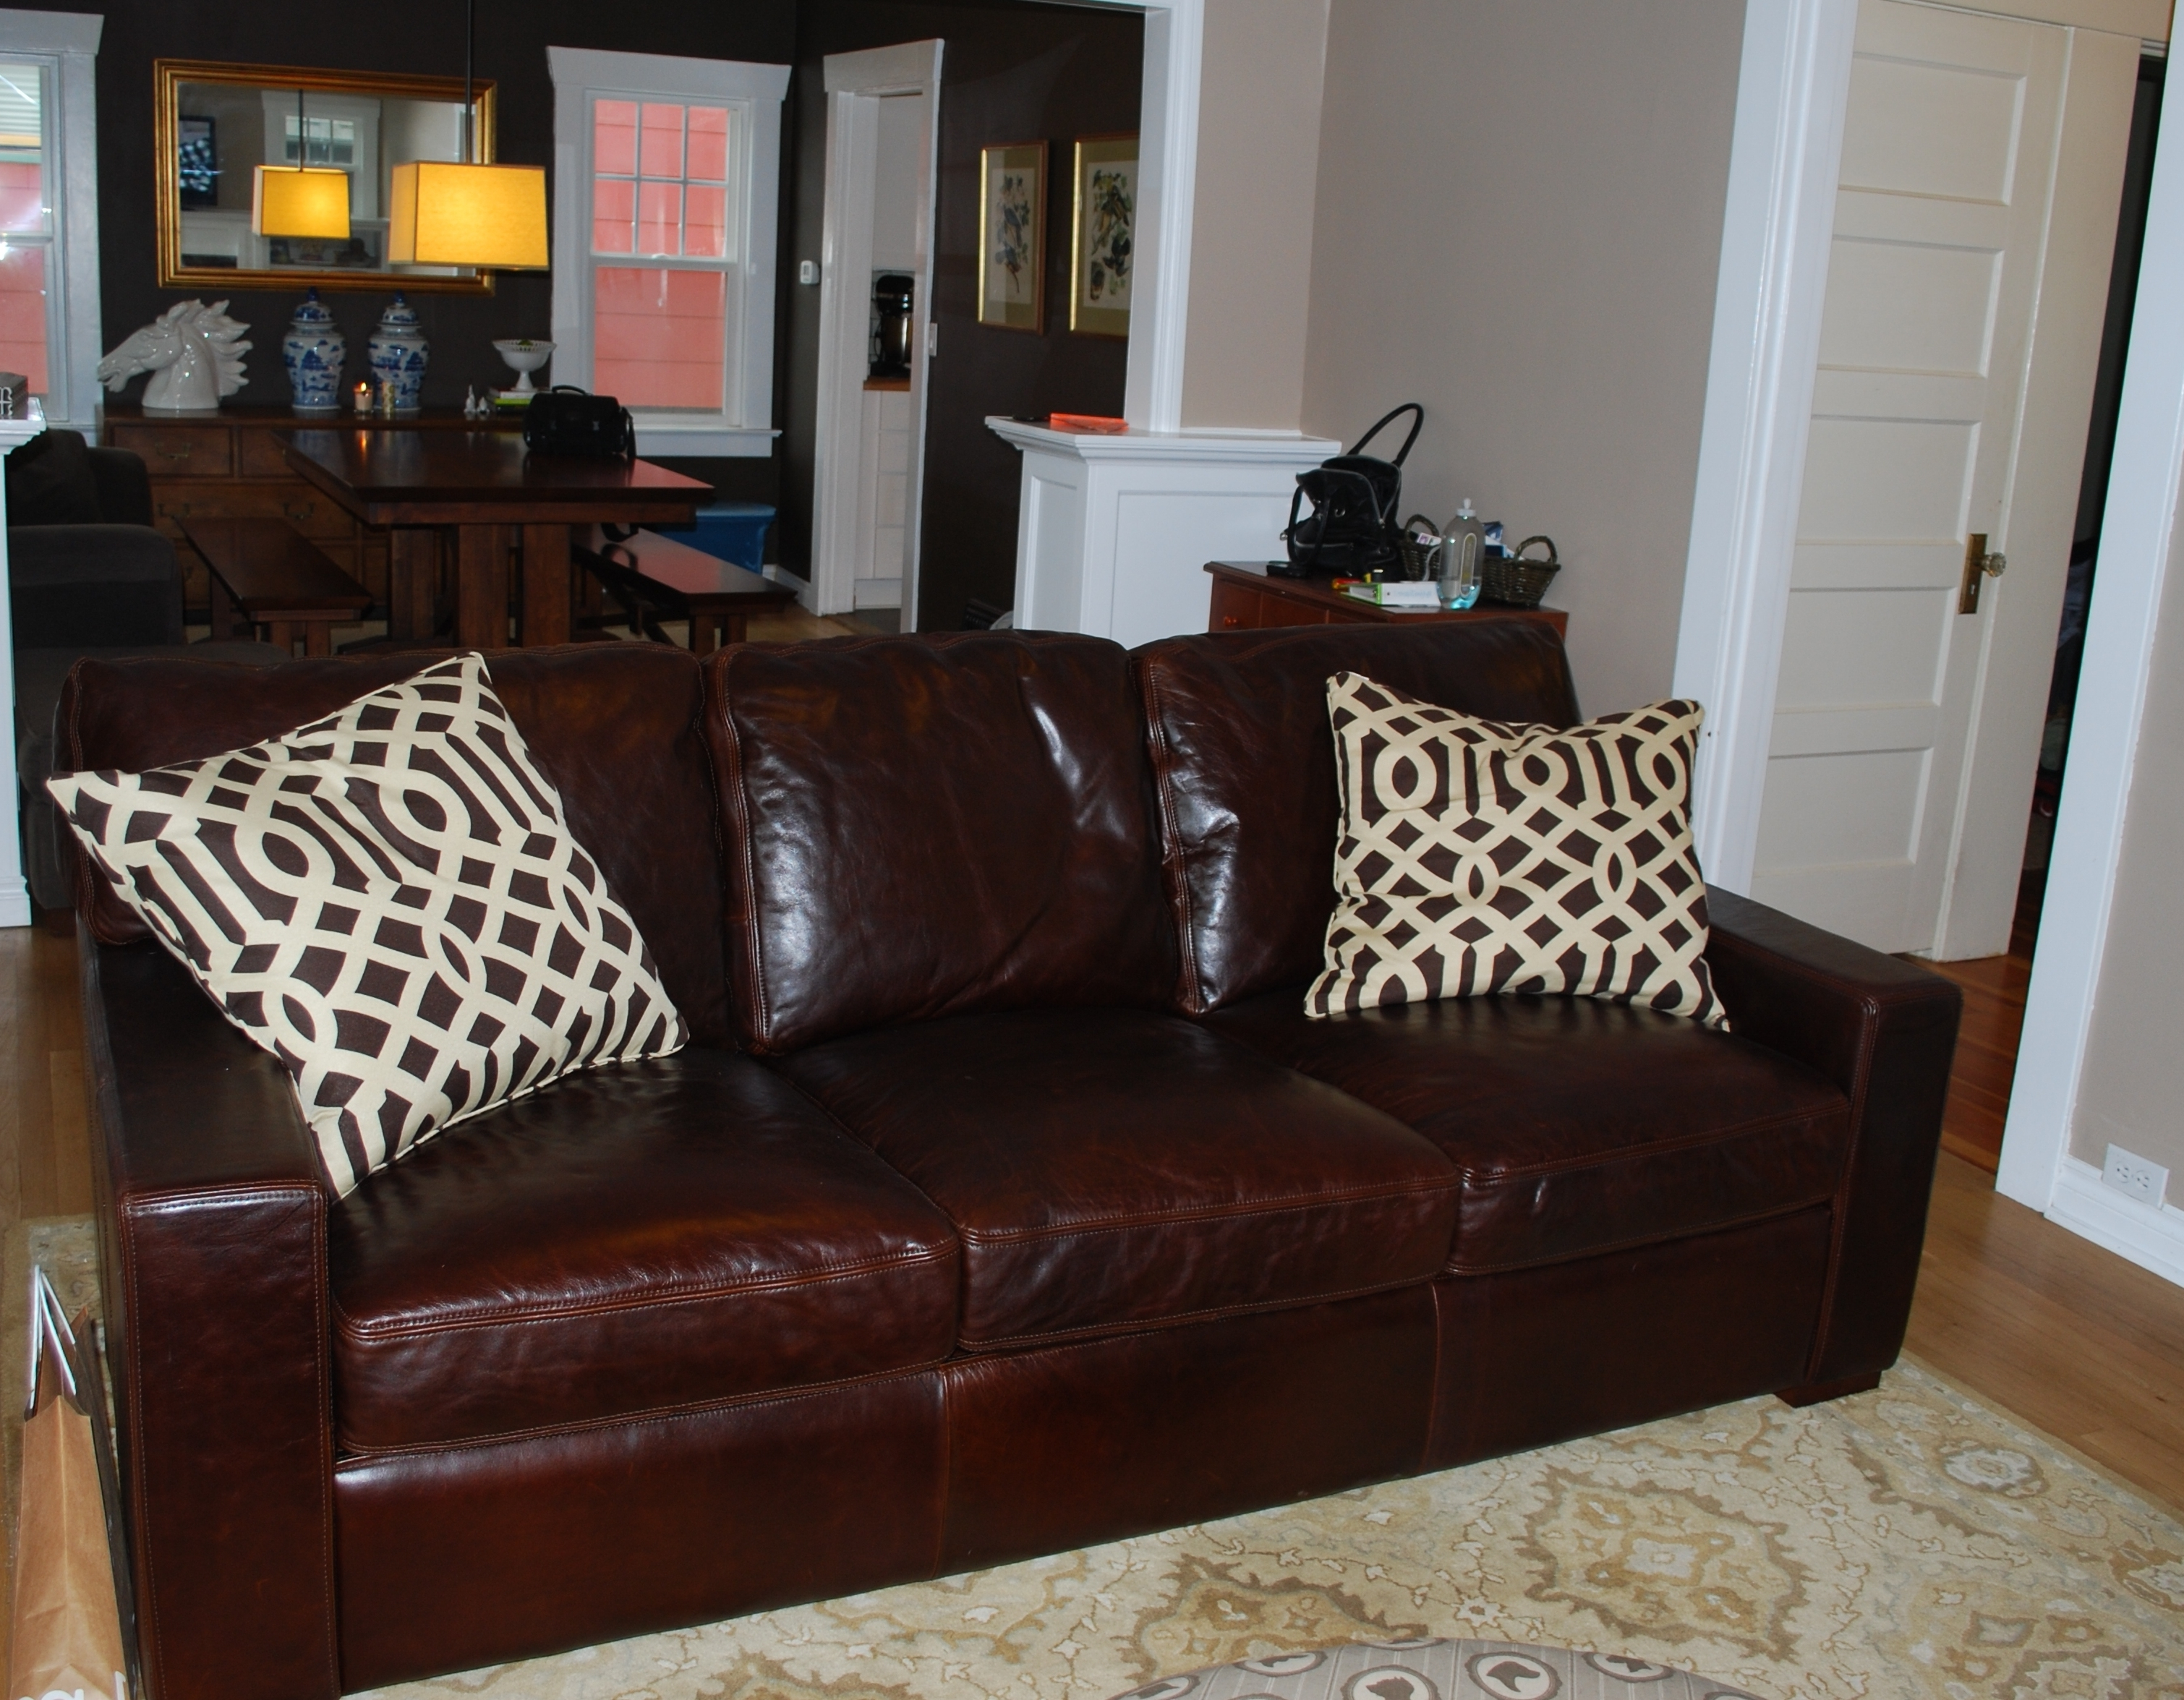 Widely Used Restoration Hardware Sectional Sofas In Restoration Hardware Maxwell Leather Sofa – Fjellkjeden (View 16 of 20)